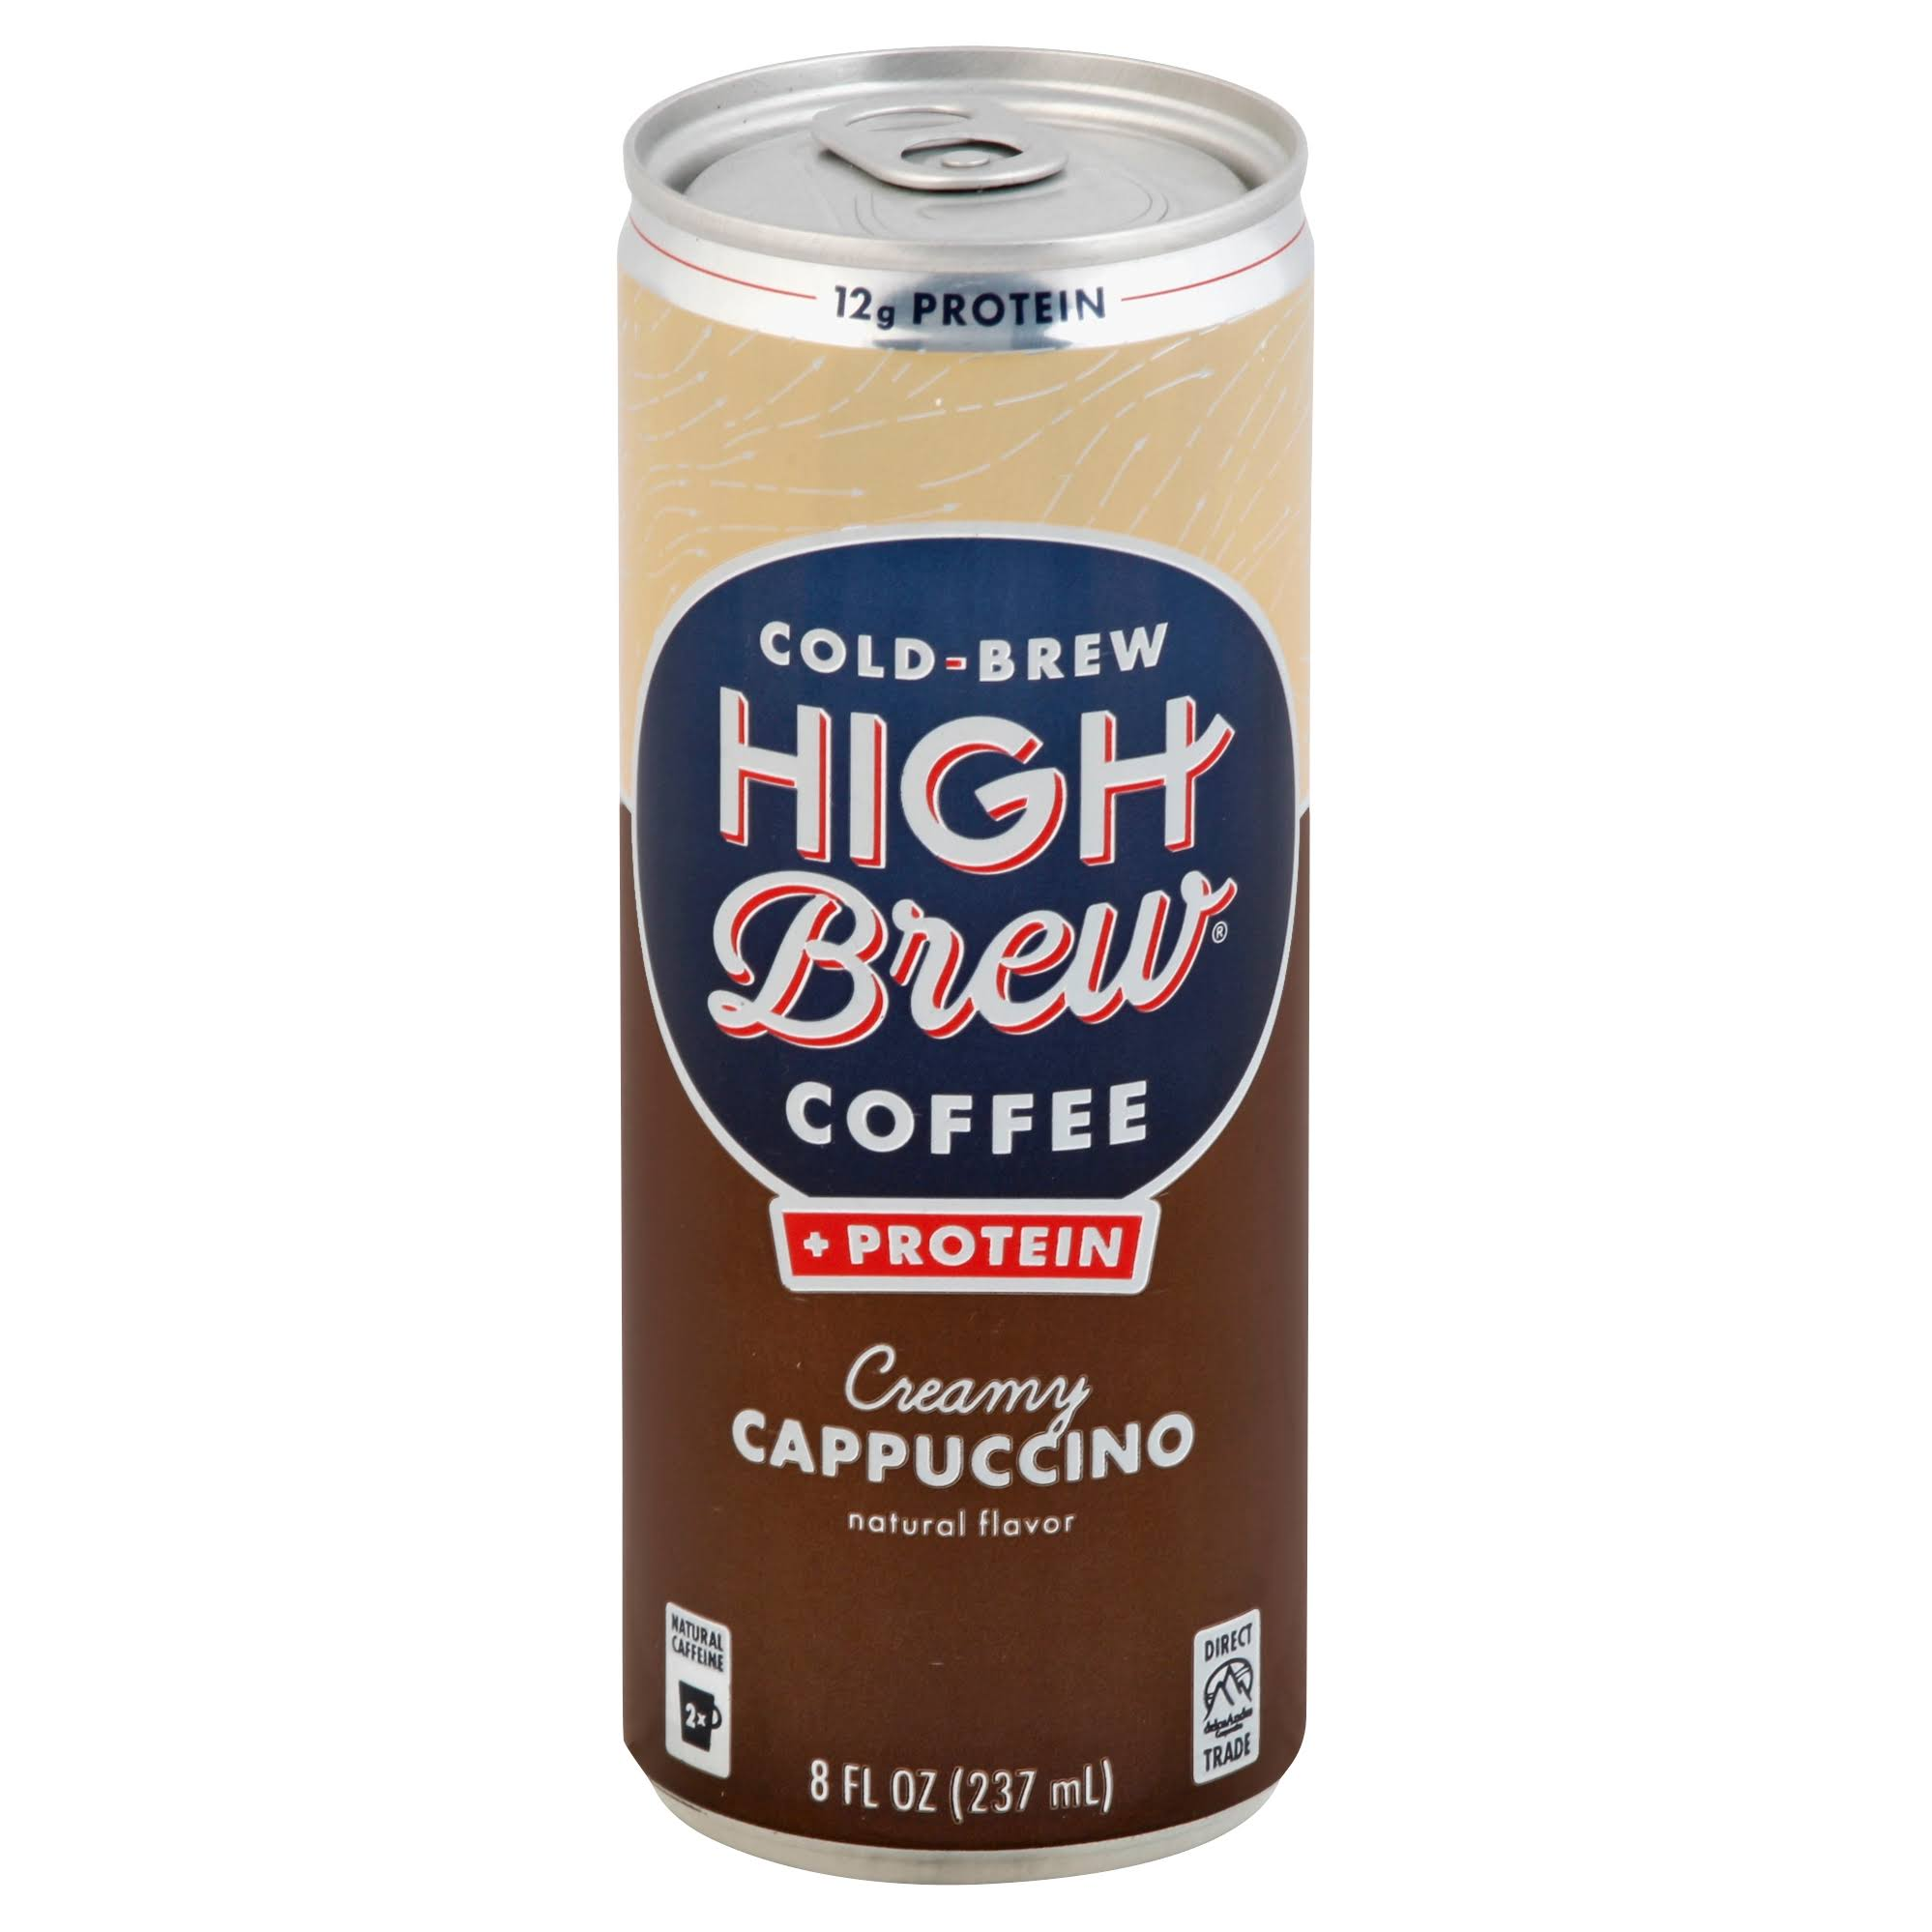 High Brew Coffee, Creamy Cappuccino - 8 fl oz can